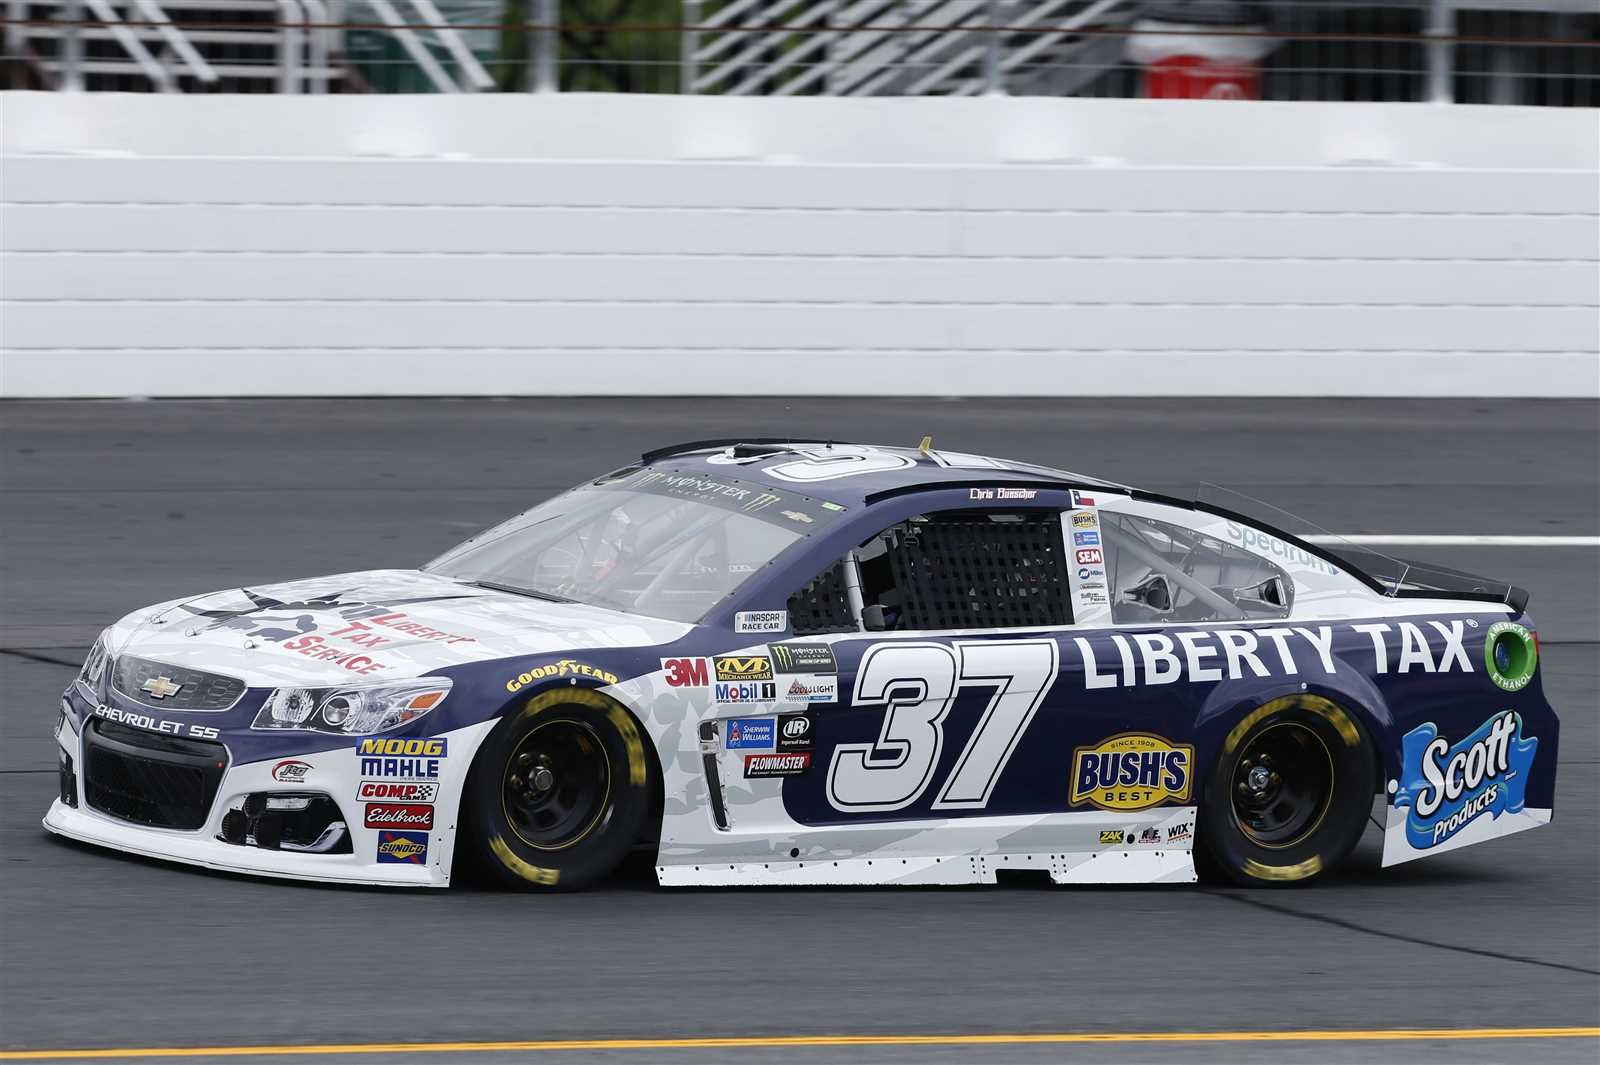 Overton S 301 Nh July 16 2017 Chris Buescher Will Start 22nd In The No 37 Jtg Daugherty Racing Chevrolet Crew Chief T Owens Spotter David Keith